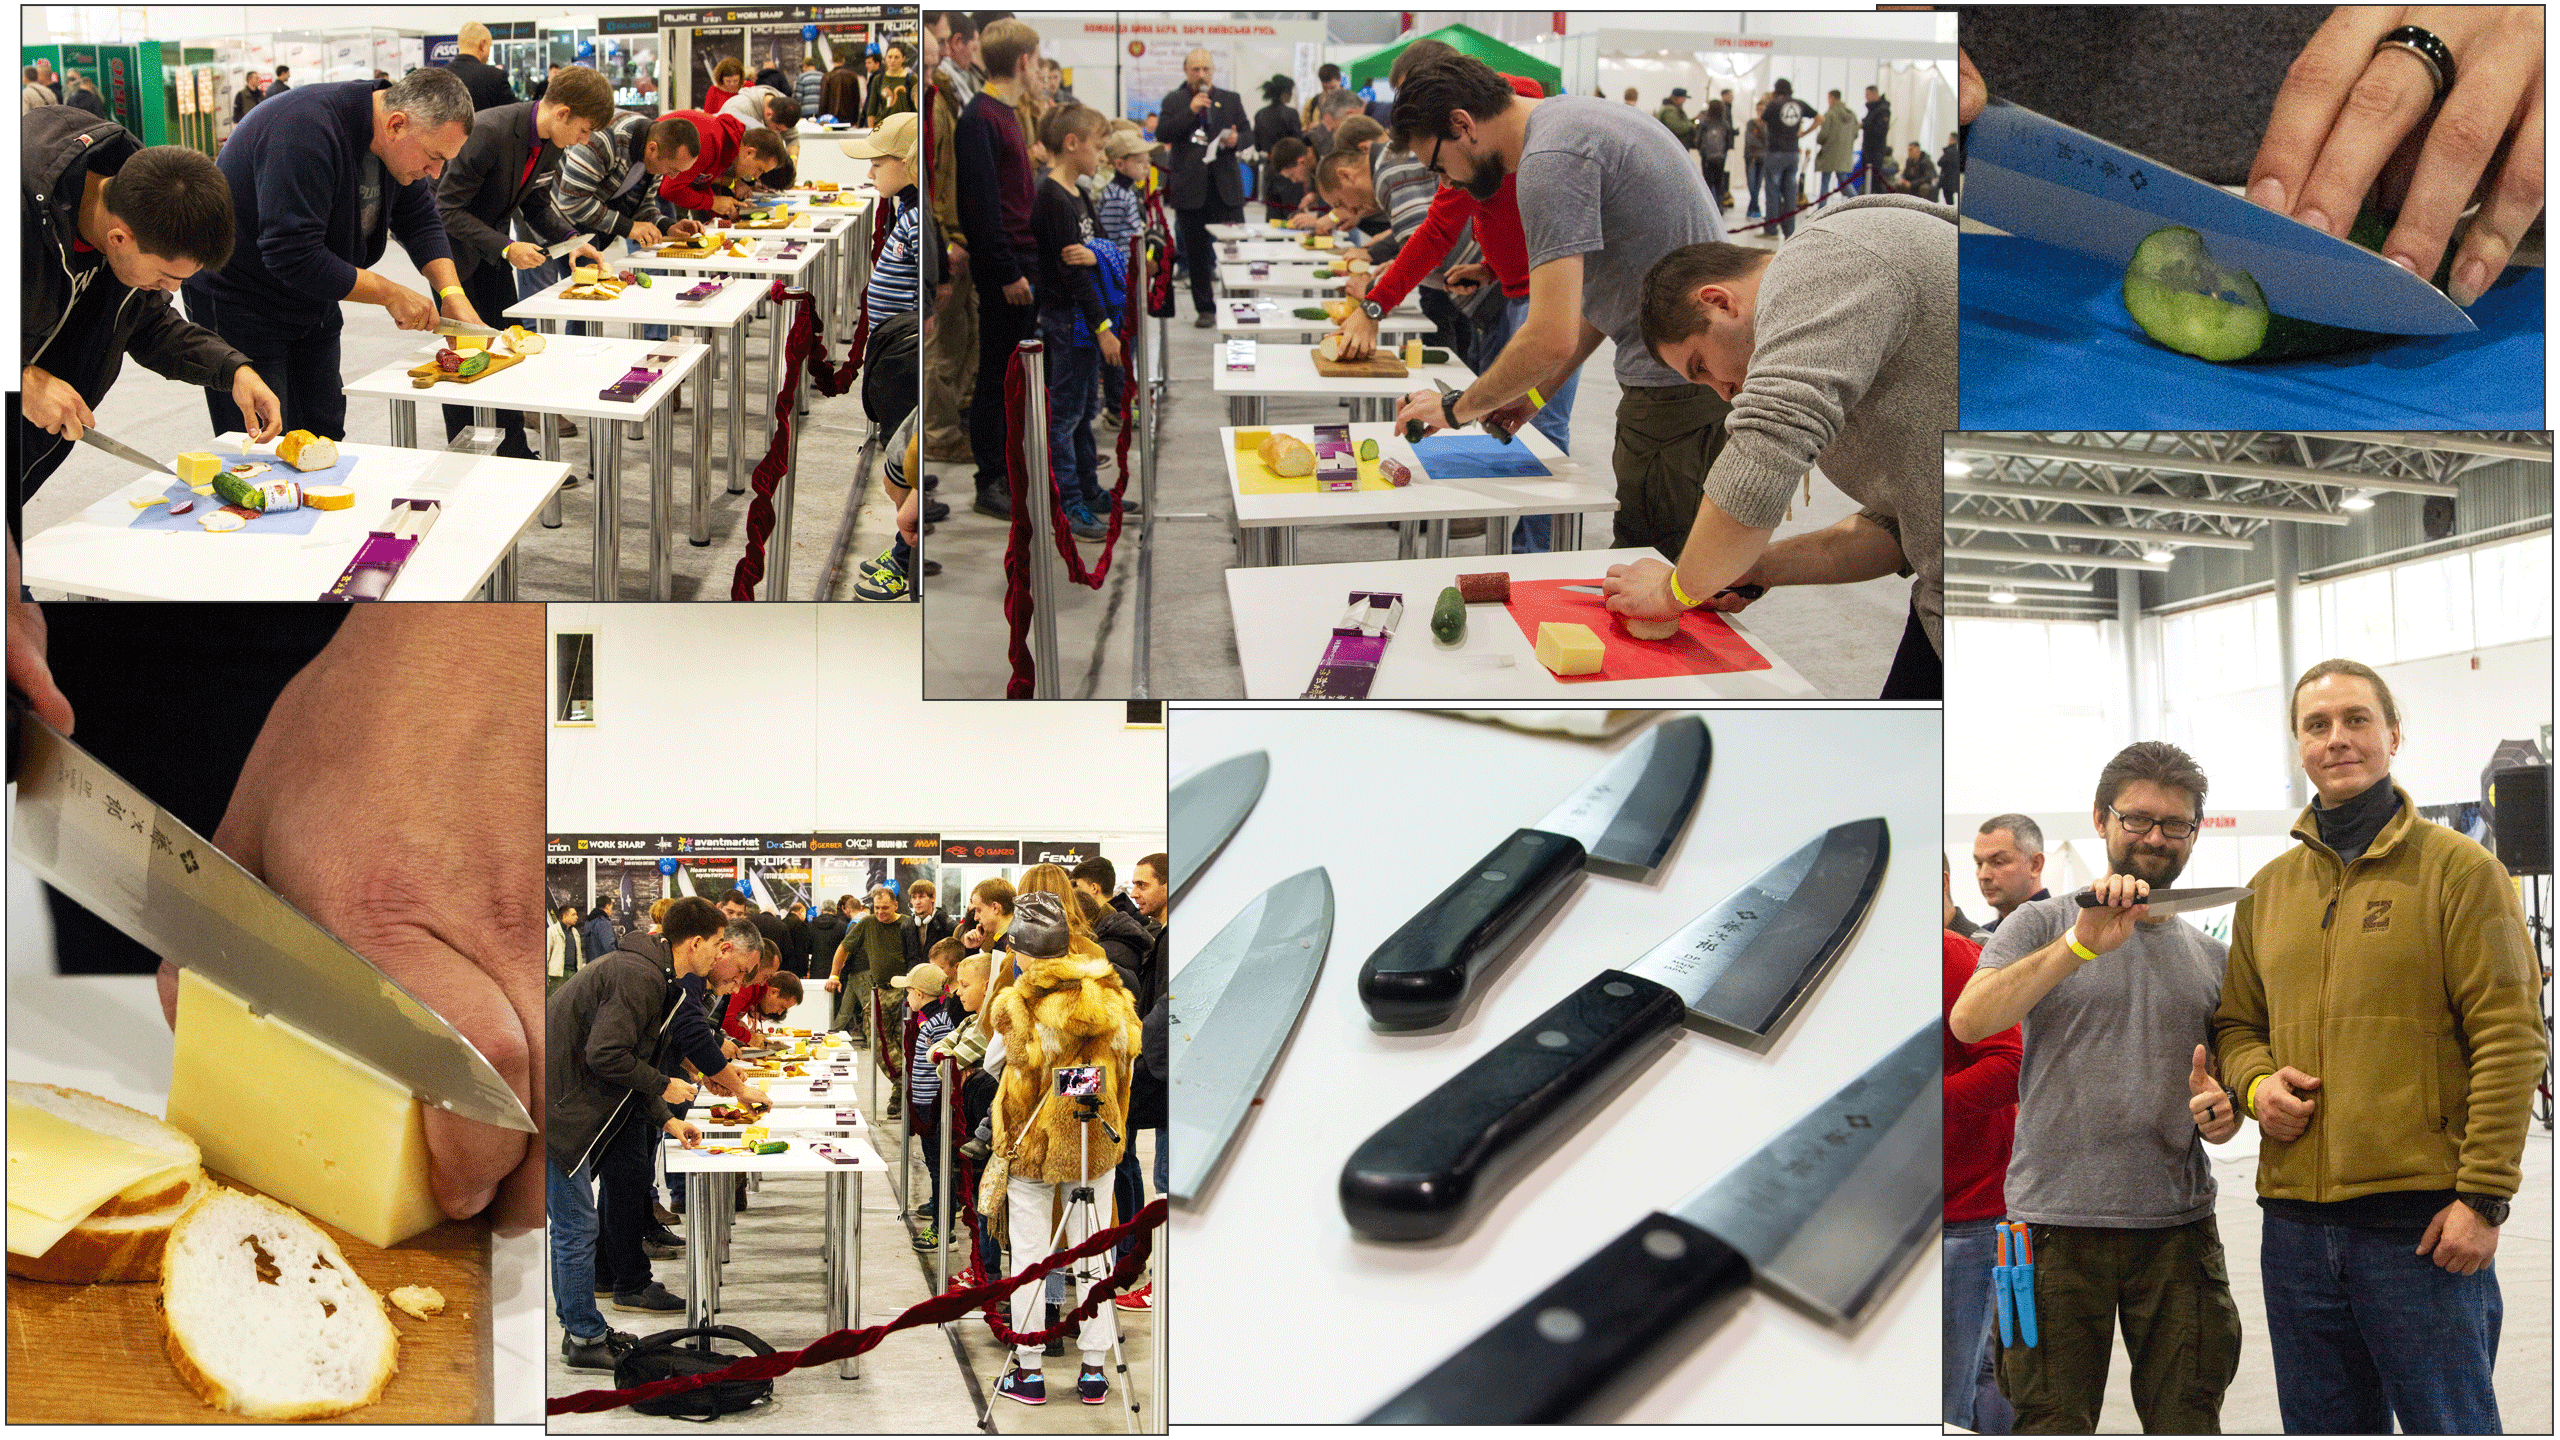 Culinary competition at the exhibition Steel Edge, in which participants use Chef knife from Tojiro